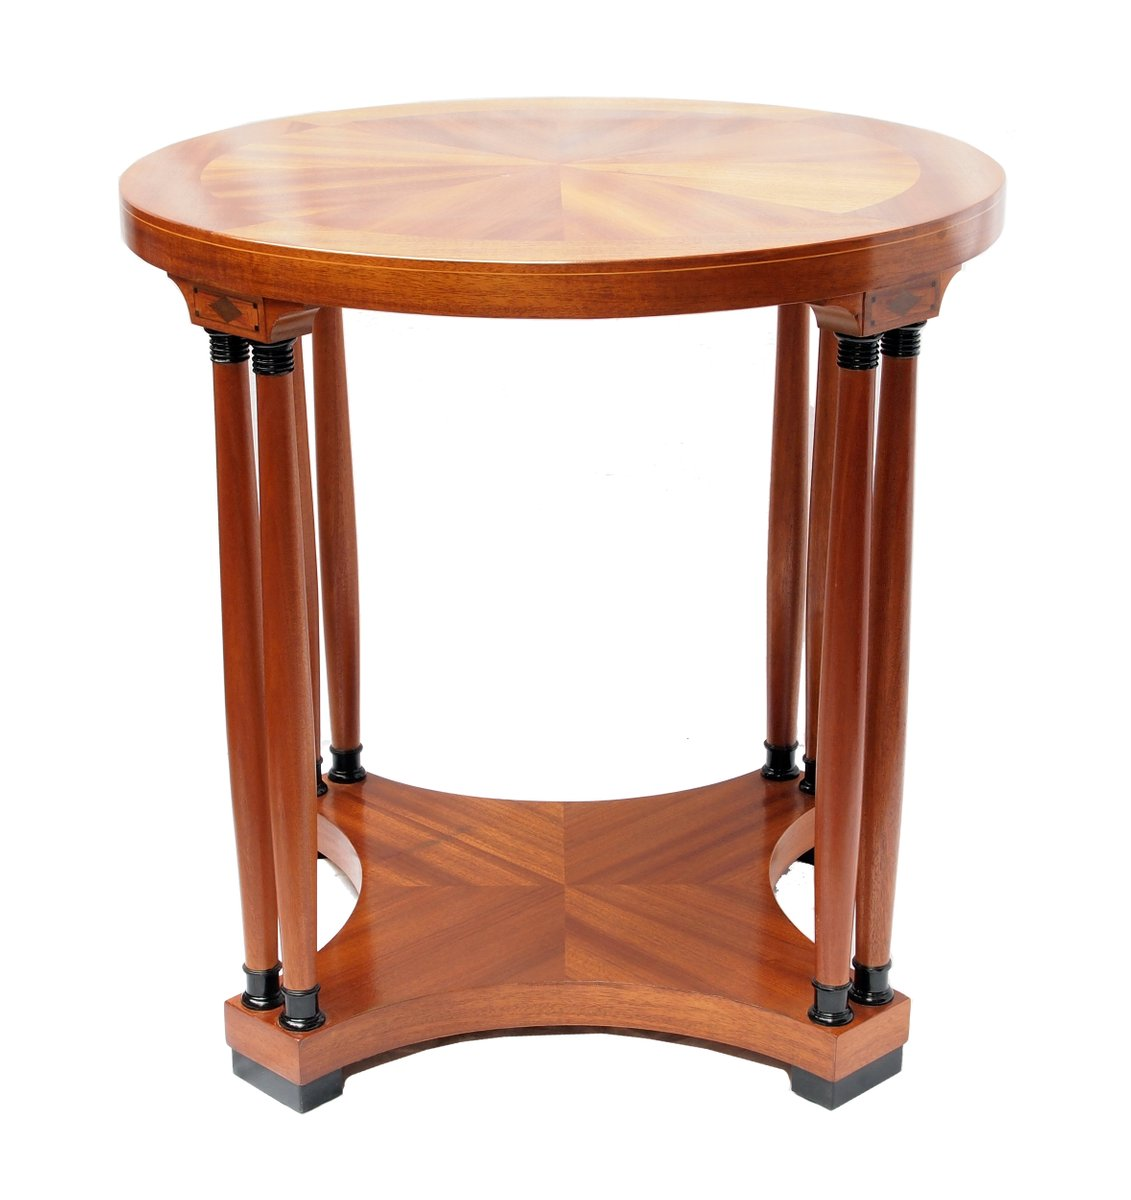 Art Nouveau Mahogany Veneer Round Side Table for sale at Pamono